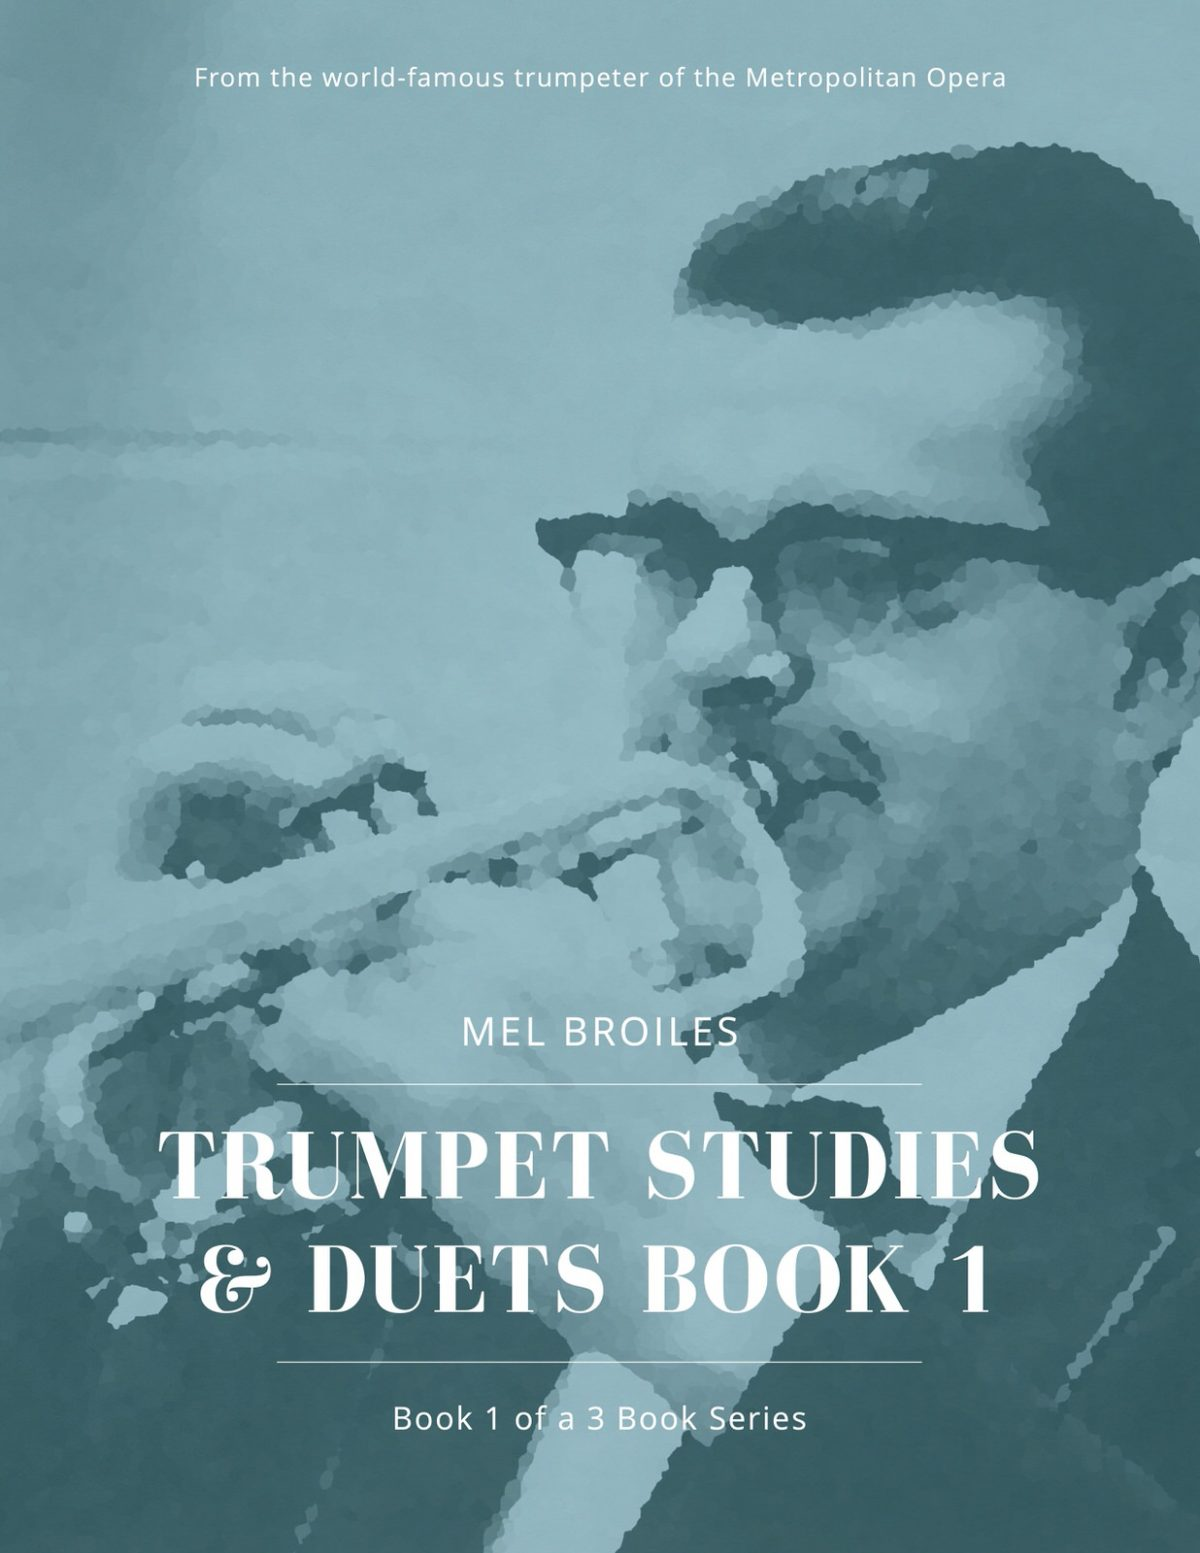 Broiles, Trumpet Studies and Duets Book 1-p01